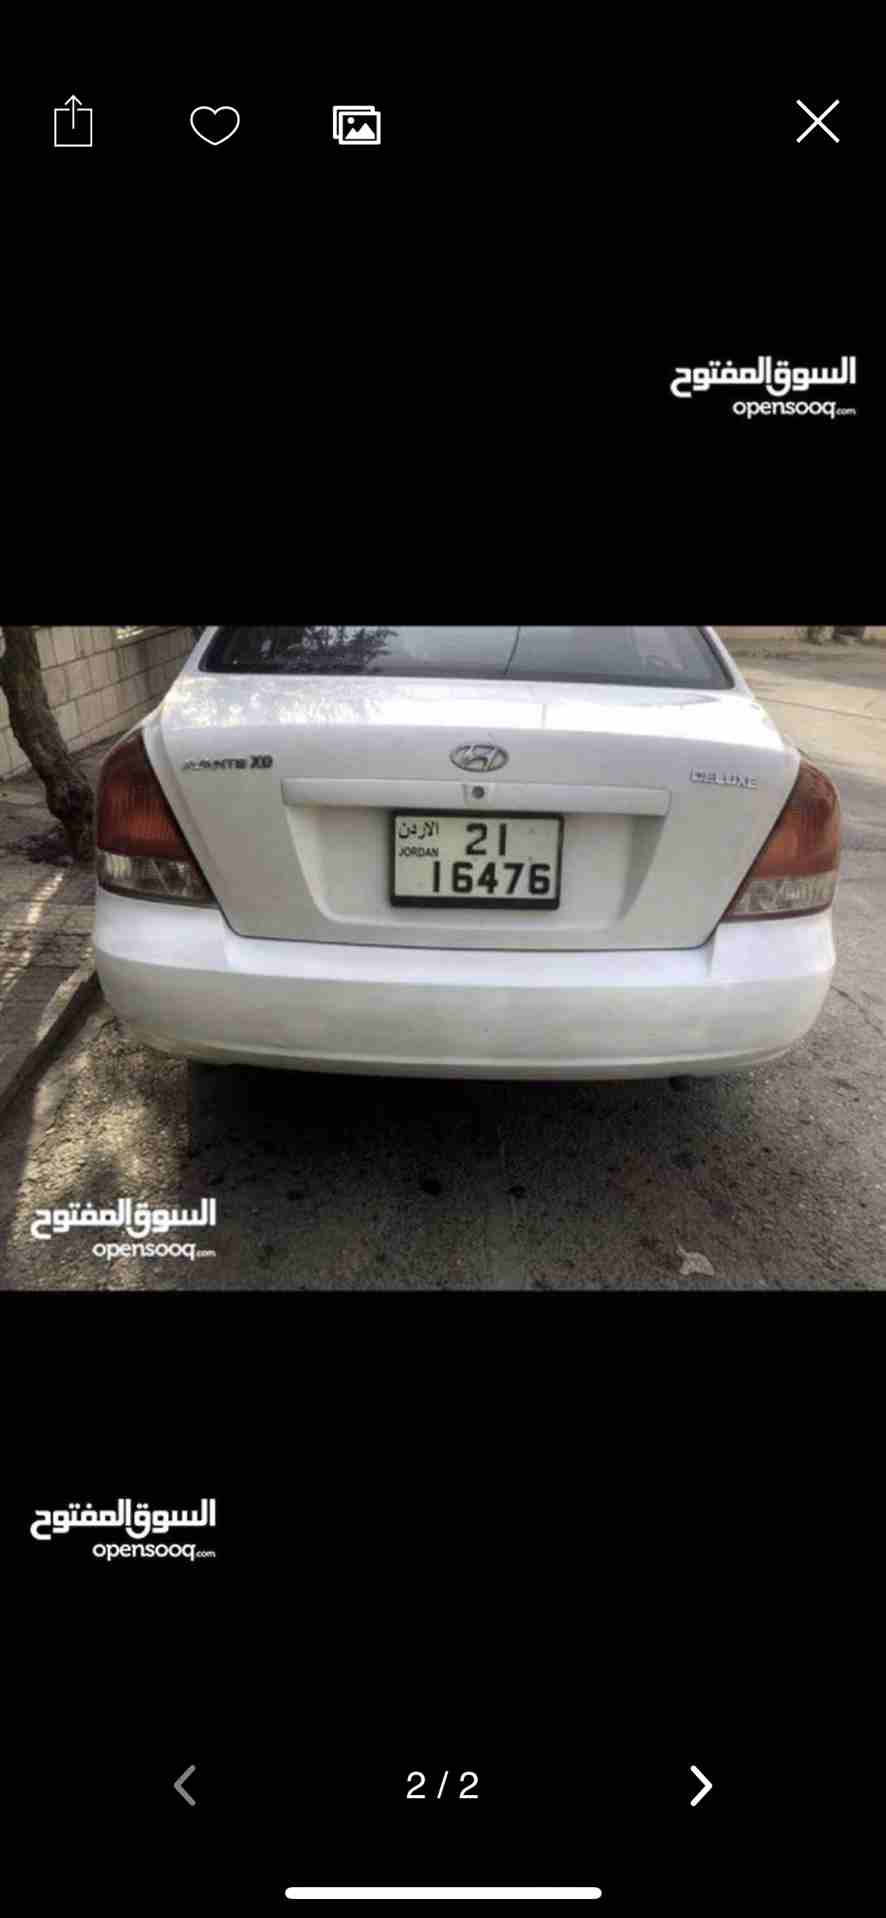 2016 Mercedes Benz G63 AMG for sale, slightly used with low mileage and i am selling this car due to some personal issues, very good Interior & Exterior wit-  افانتي ديلوكس فحص لا تنسَ...